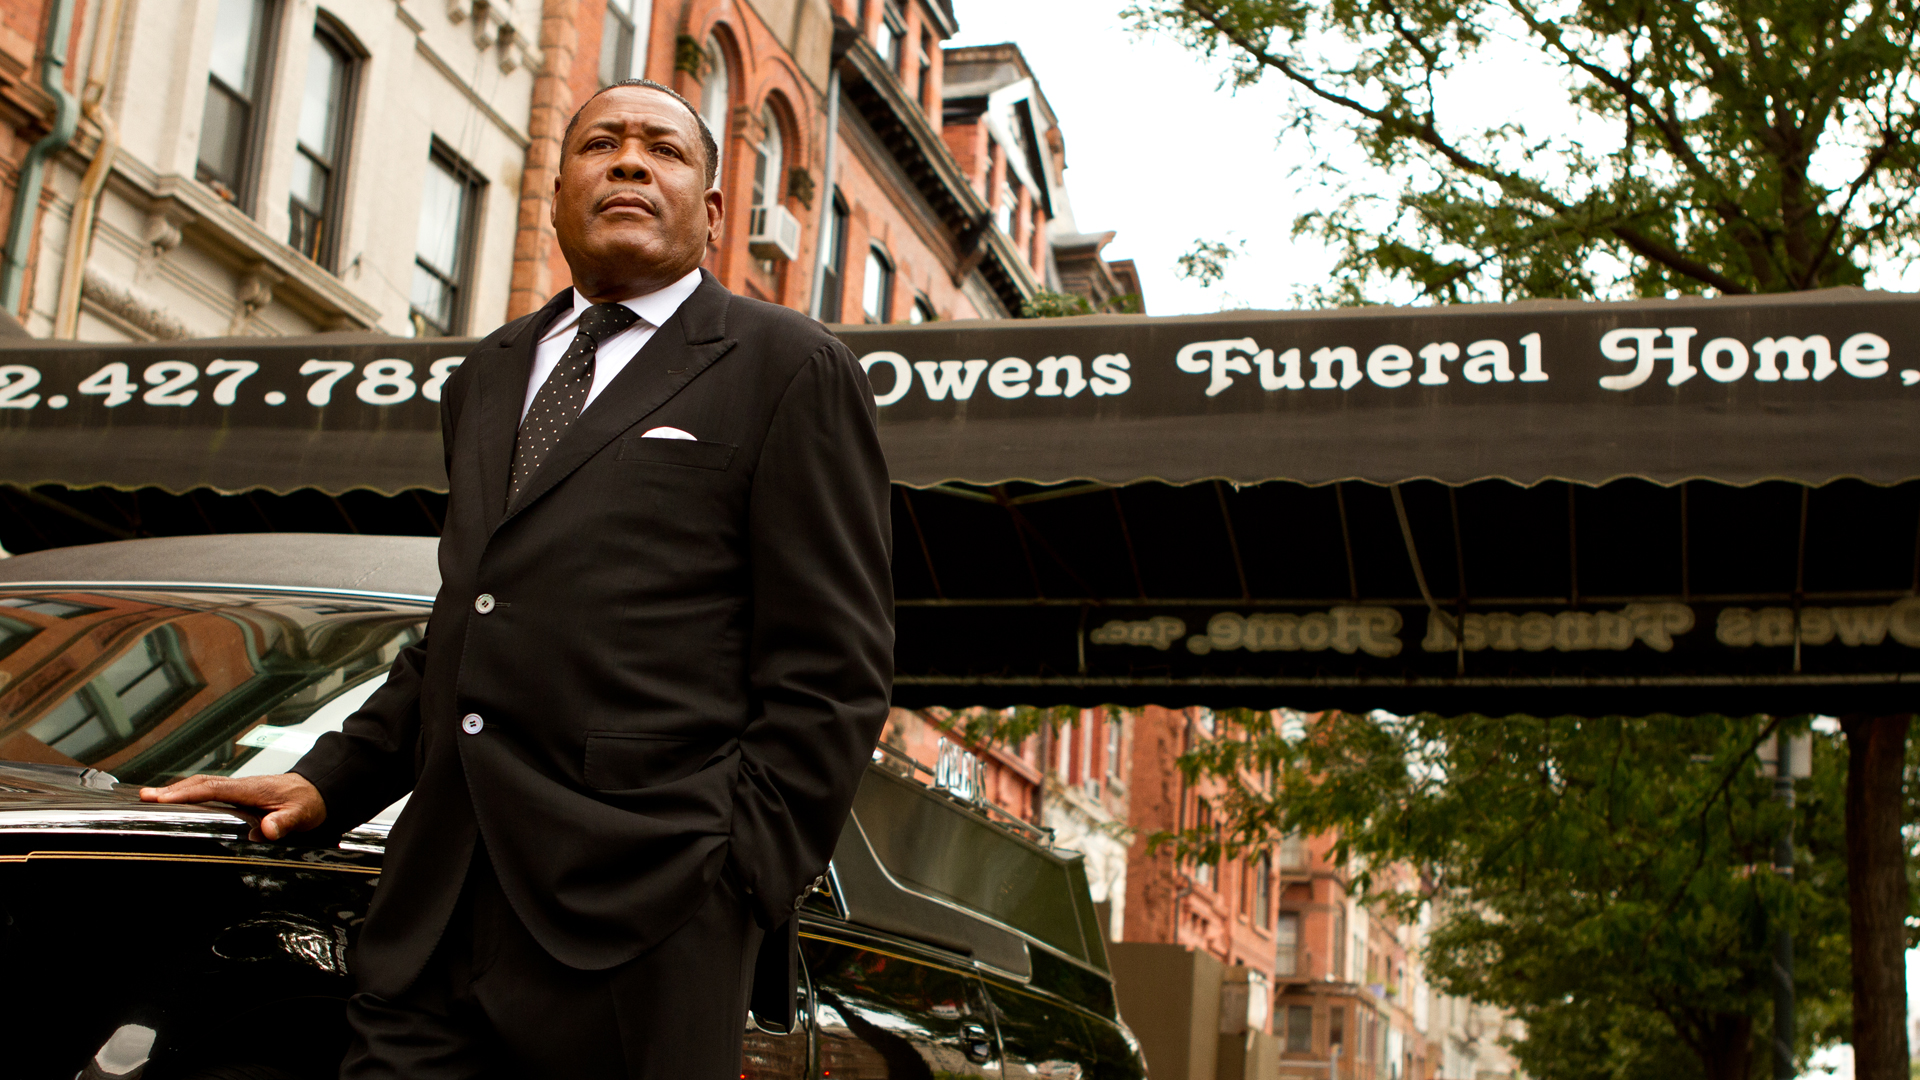 Funerals And Funeral Homes Through The Lens Of Issiah Owens Funeral